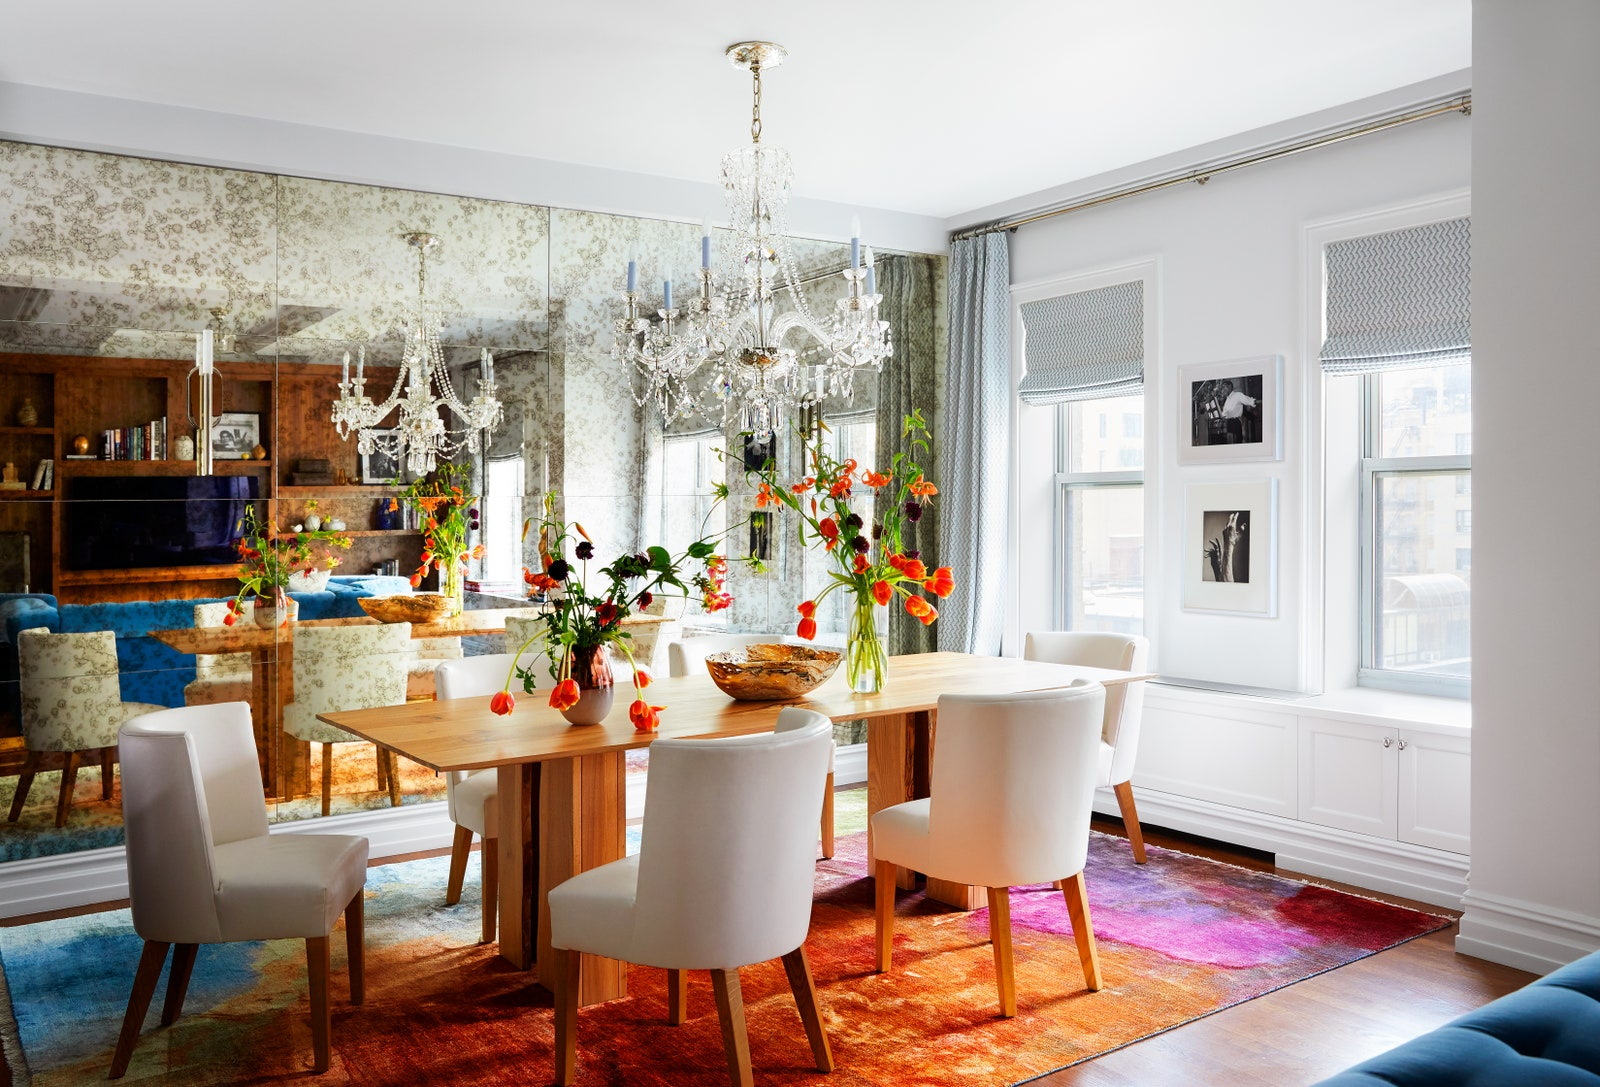 Exquisite Dining Room Furniture to Buy in 2021